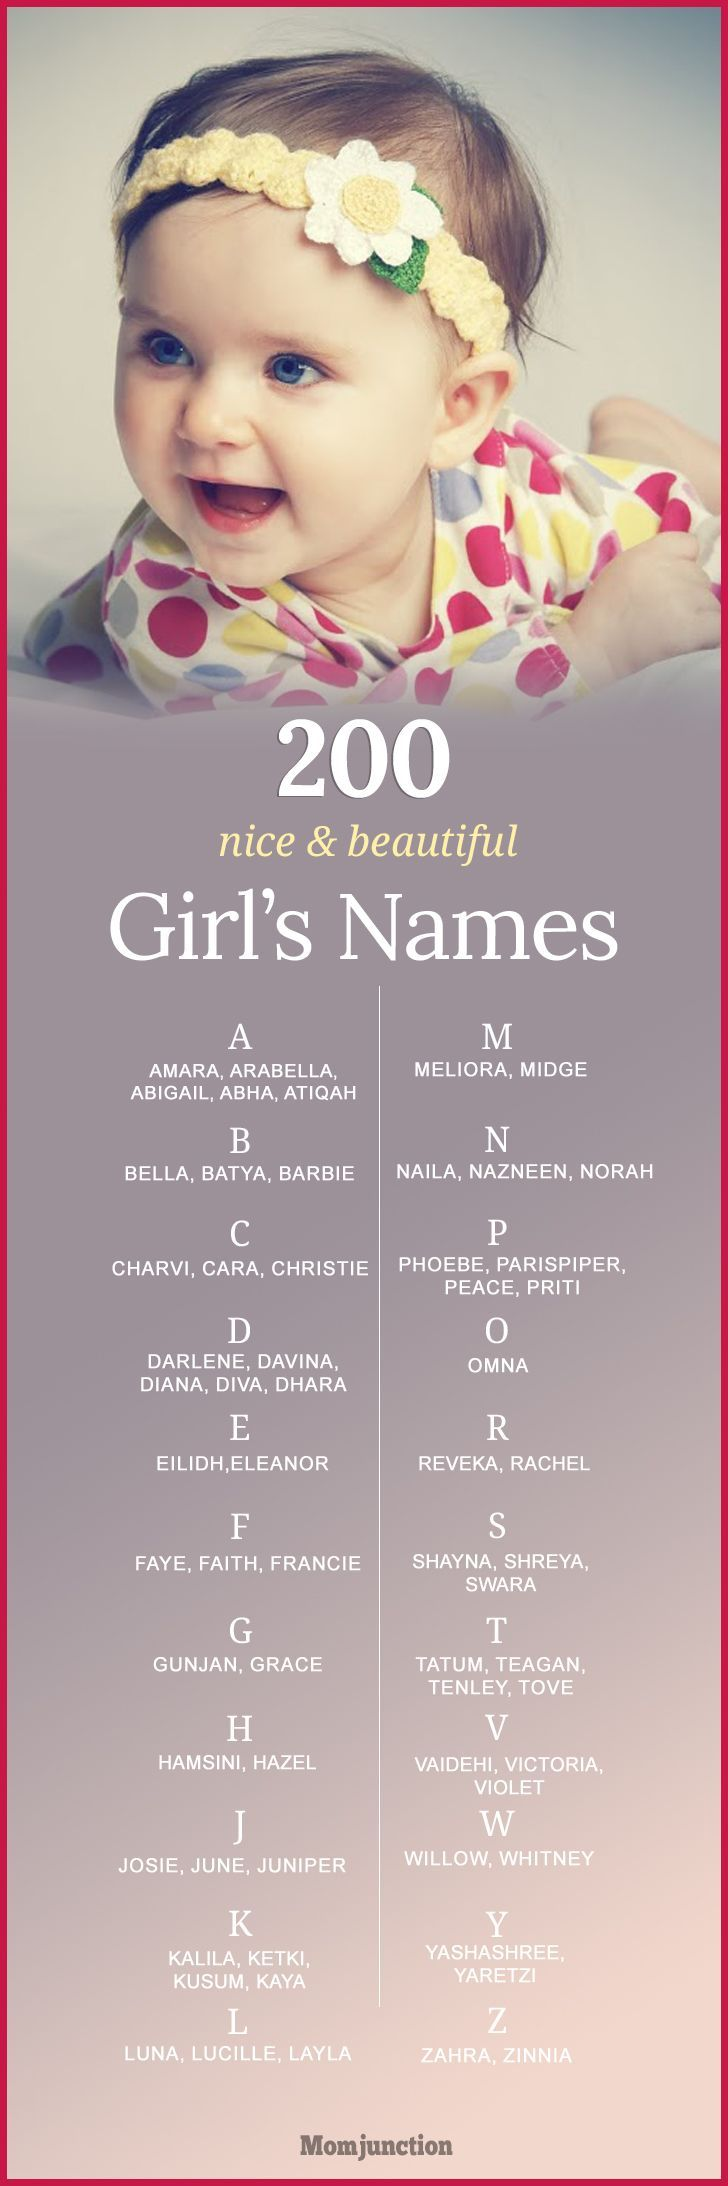 235 Nice And Beautiful Baby Girl Names With Meanings ...